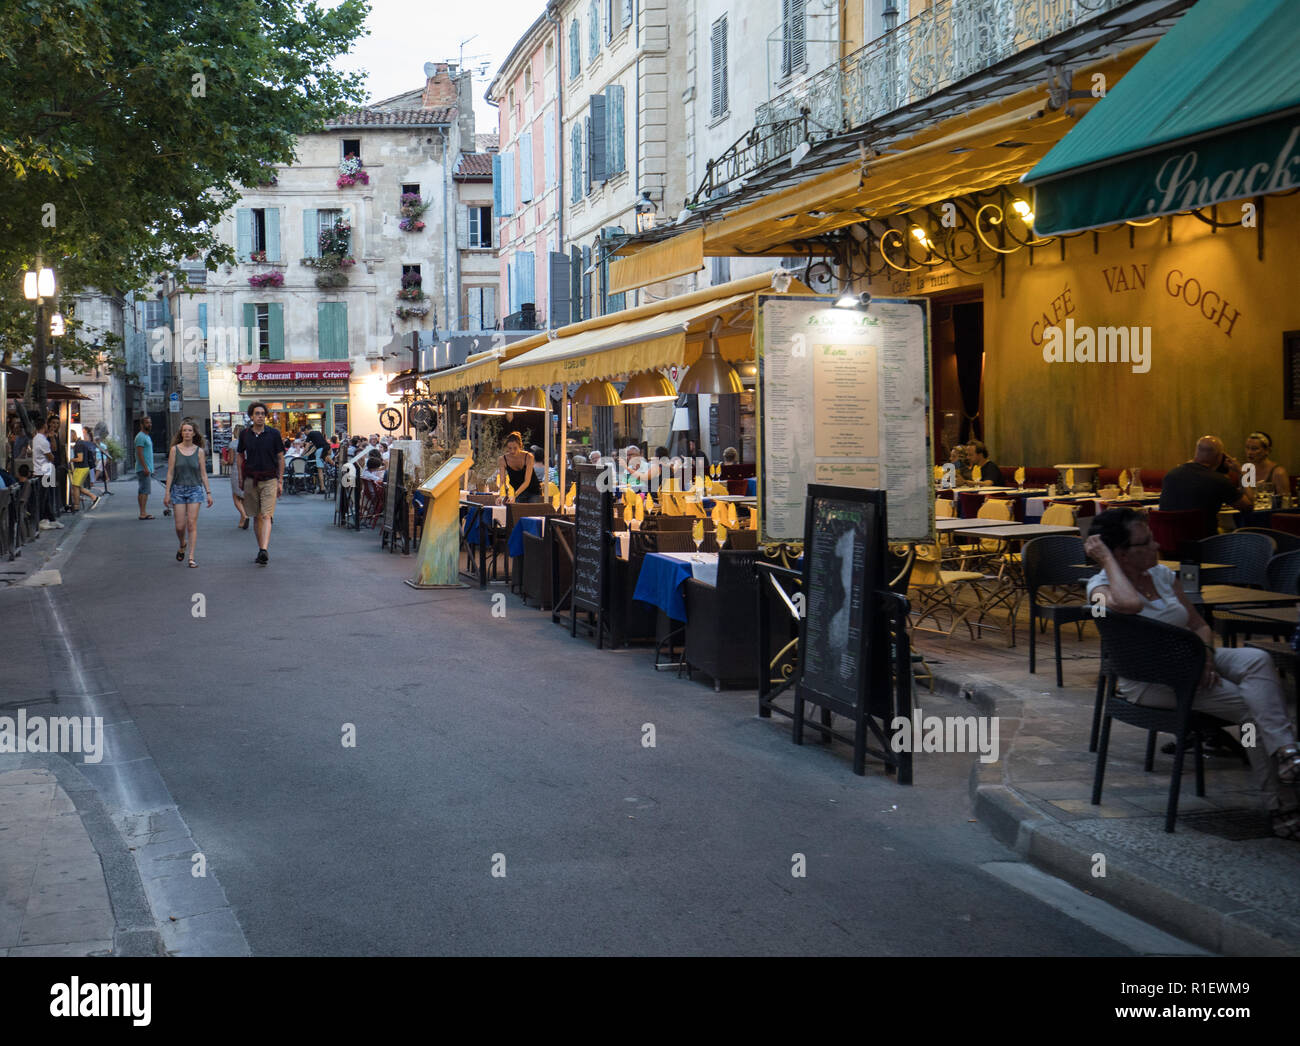 Arles, France - June 24, 2017: People sitting at a cafe in Place du Forum, Arles, Provence, France. - Stock Image